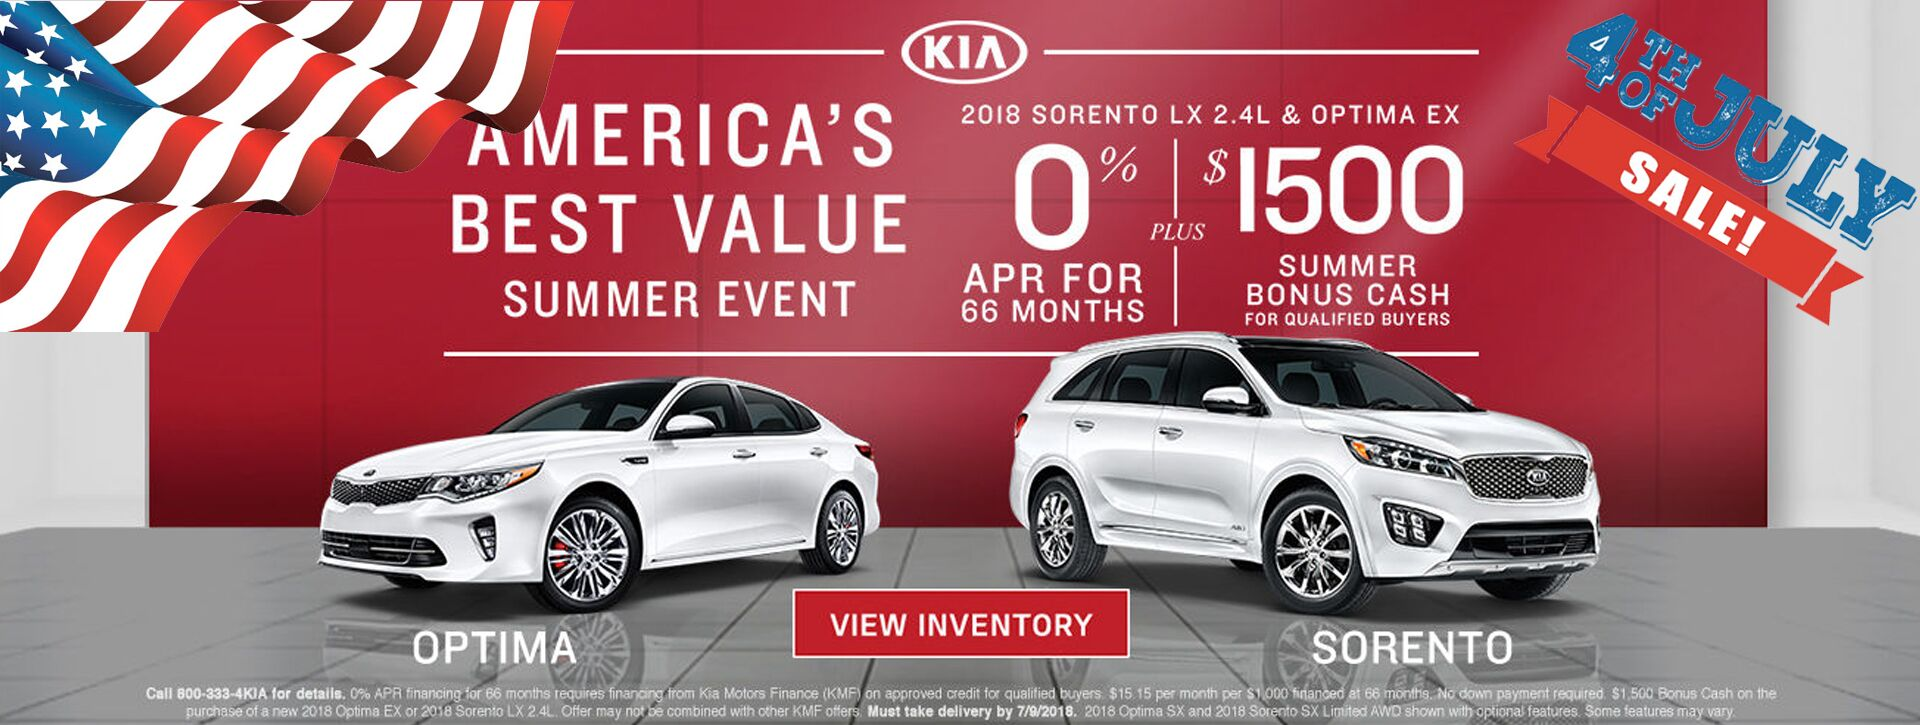 Orange County Kia America's Best Value Summer Event at Kia of Irvine